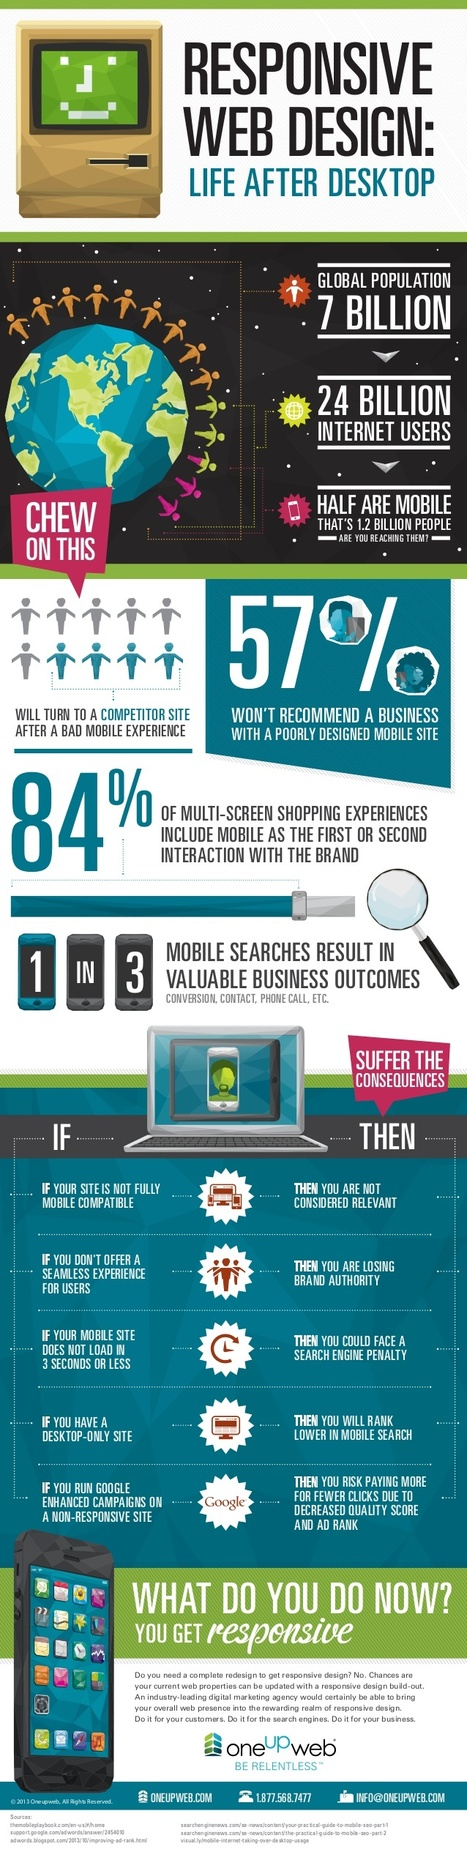 4 in 10 will turn to competitor after bad web experience #infographic | MarketingHits | Scoop.it